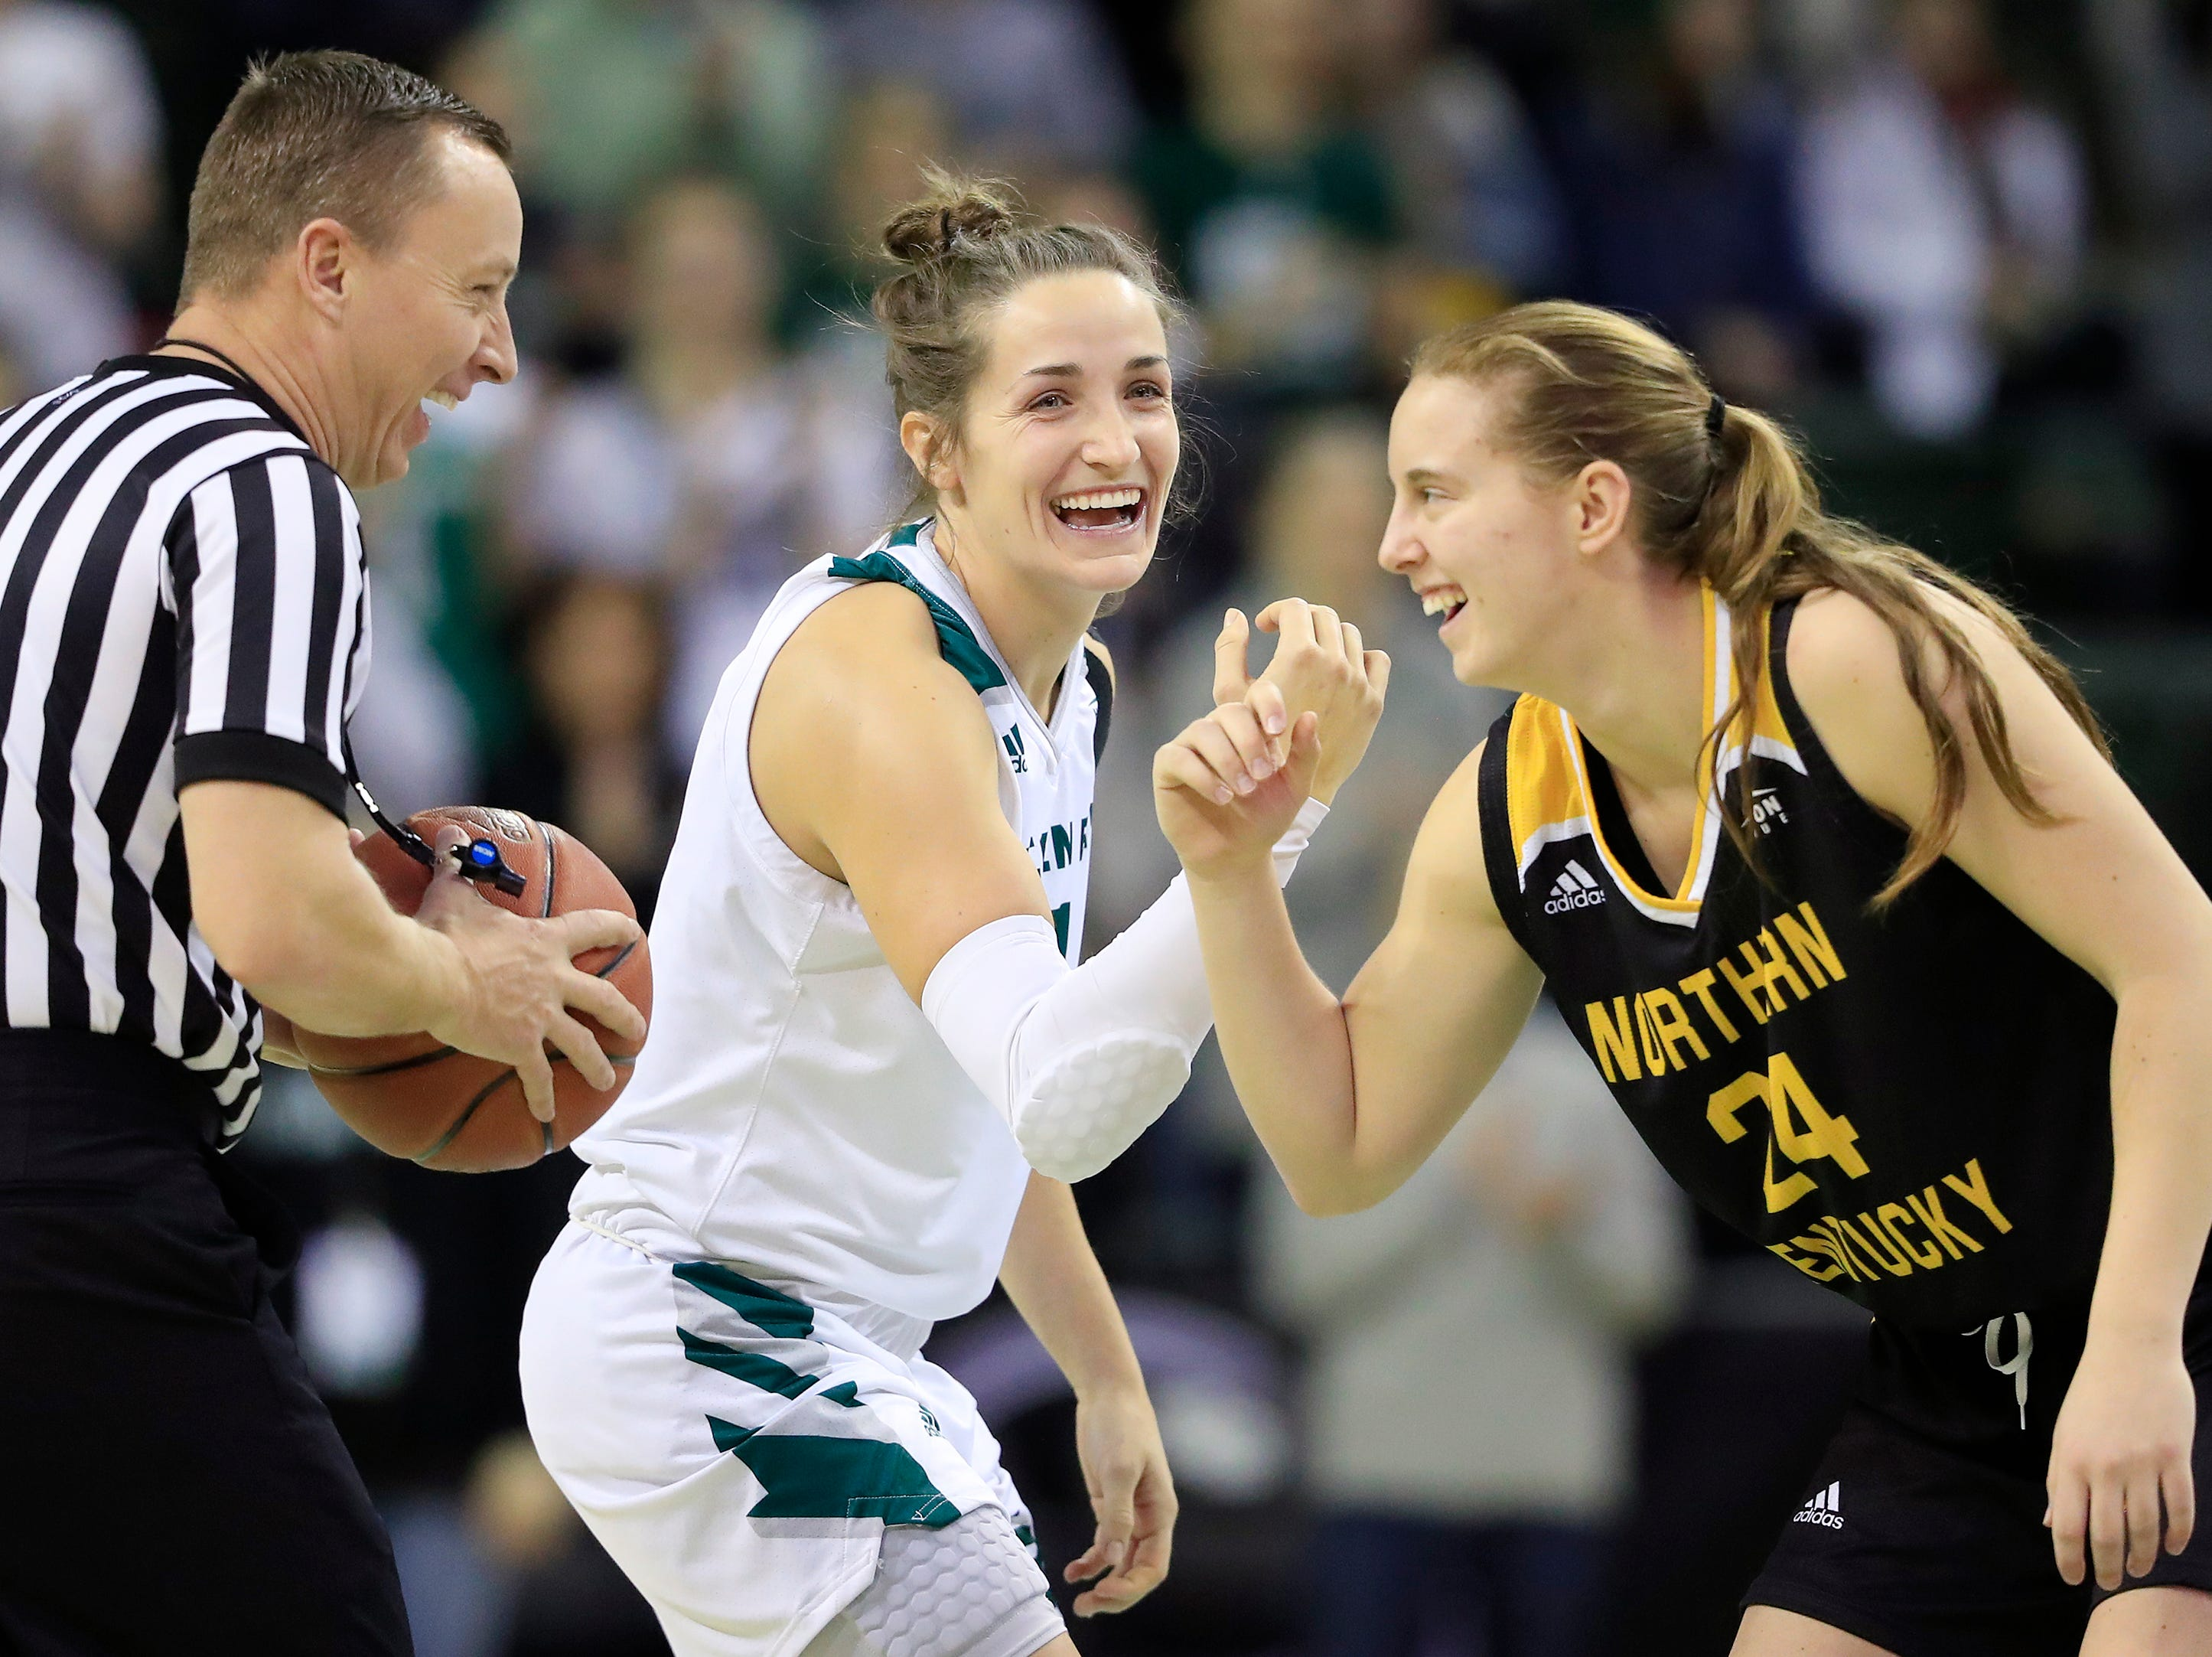 Green Bay Phoenix guard Jen Wellnitz (1) and Northern Kentucky Norse guard Molly Glick (24) joke with the referee before the opening tip of a Horizon League women's basketball game at the Kress Center on Thursday, February 7, 2019 in Green Bay, Wis.